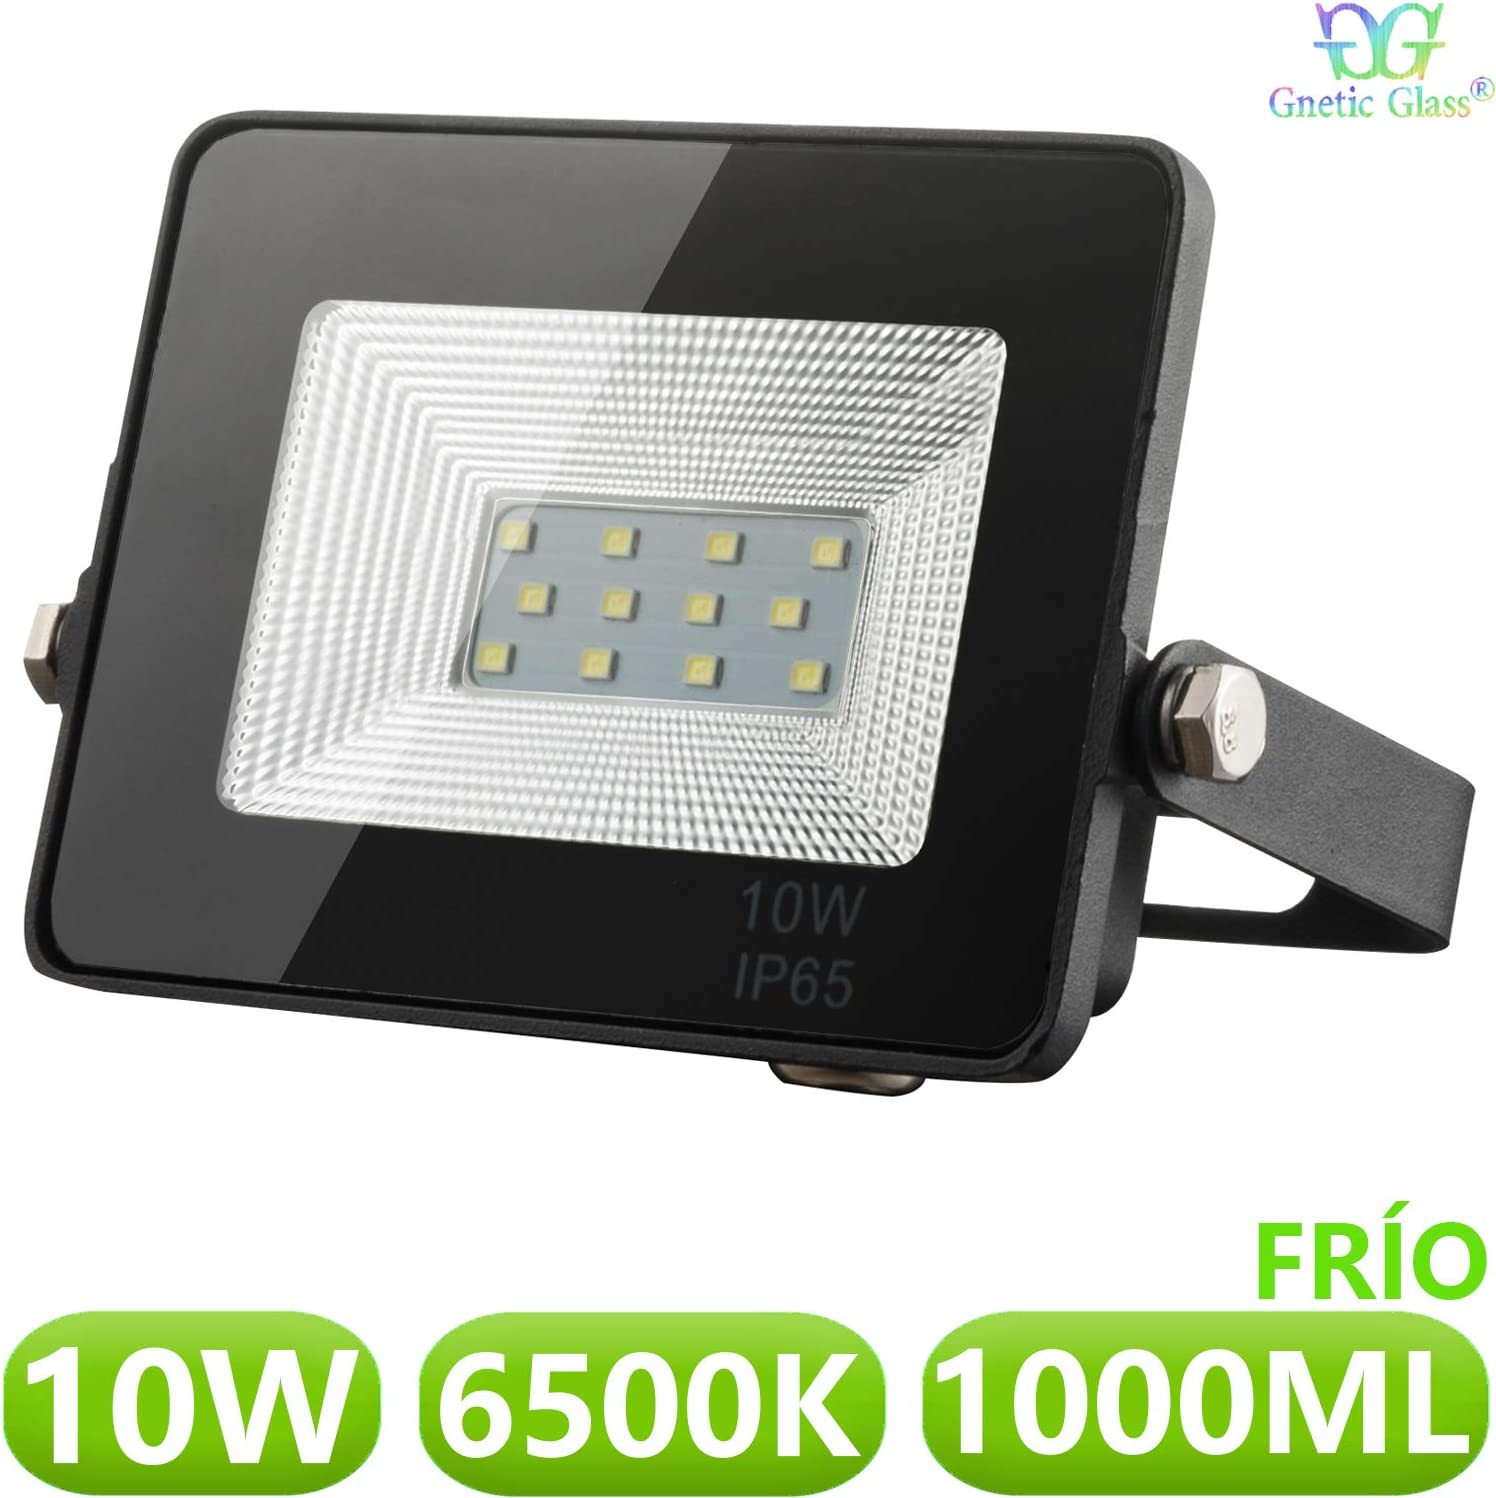 Foco LED exterior Floodlight 10W GNETIC GLASS Proyector Negro Impermeable IP65 1000LM Color Luz Blanco Frío 6500K Angulo 120º 85x115 mm 30000h Equivalente a 100W [Eficiencia energética A++] Pack x1: Amazon.es: Iluminación